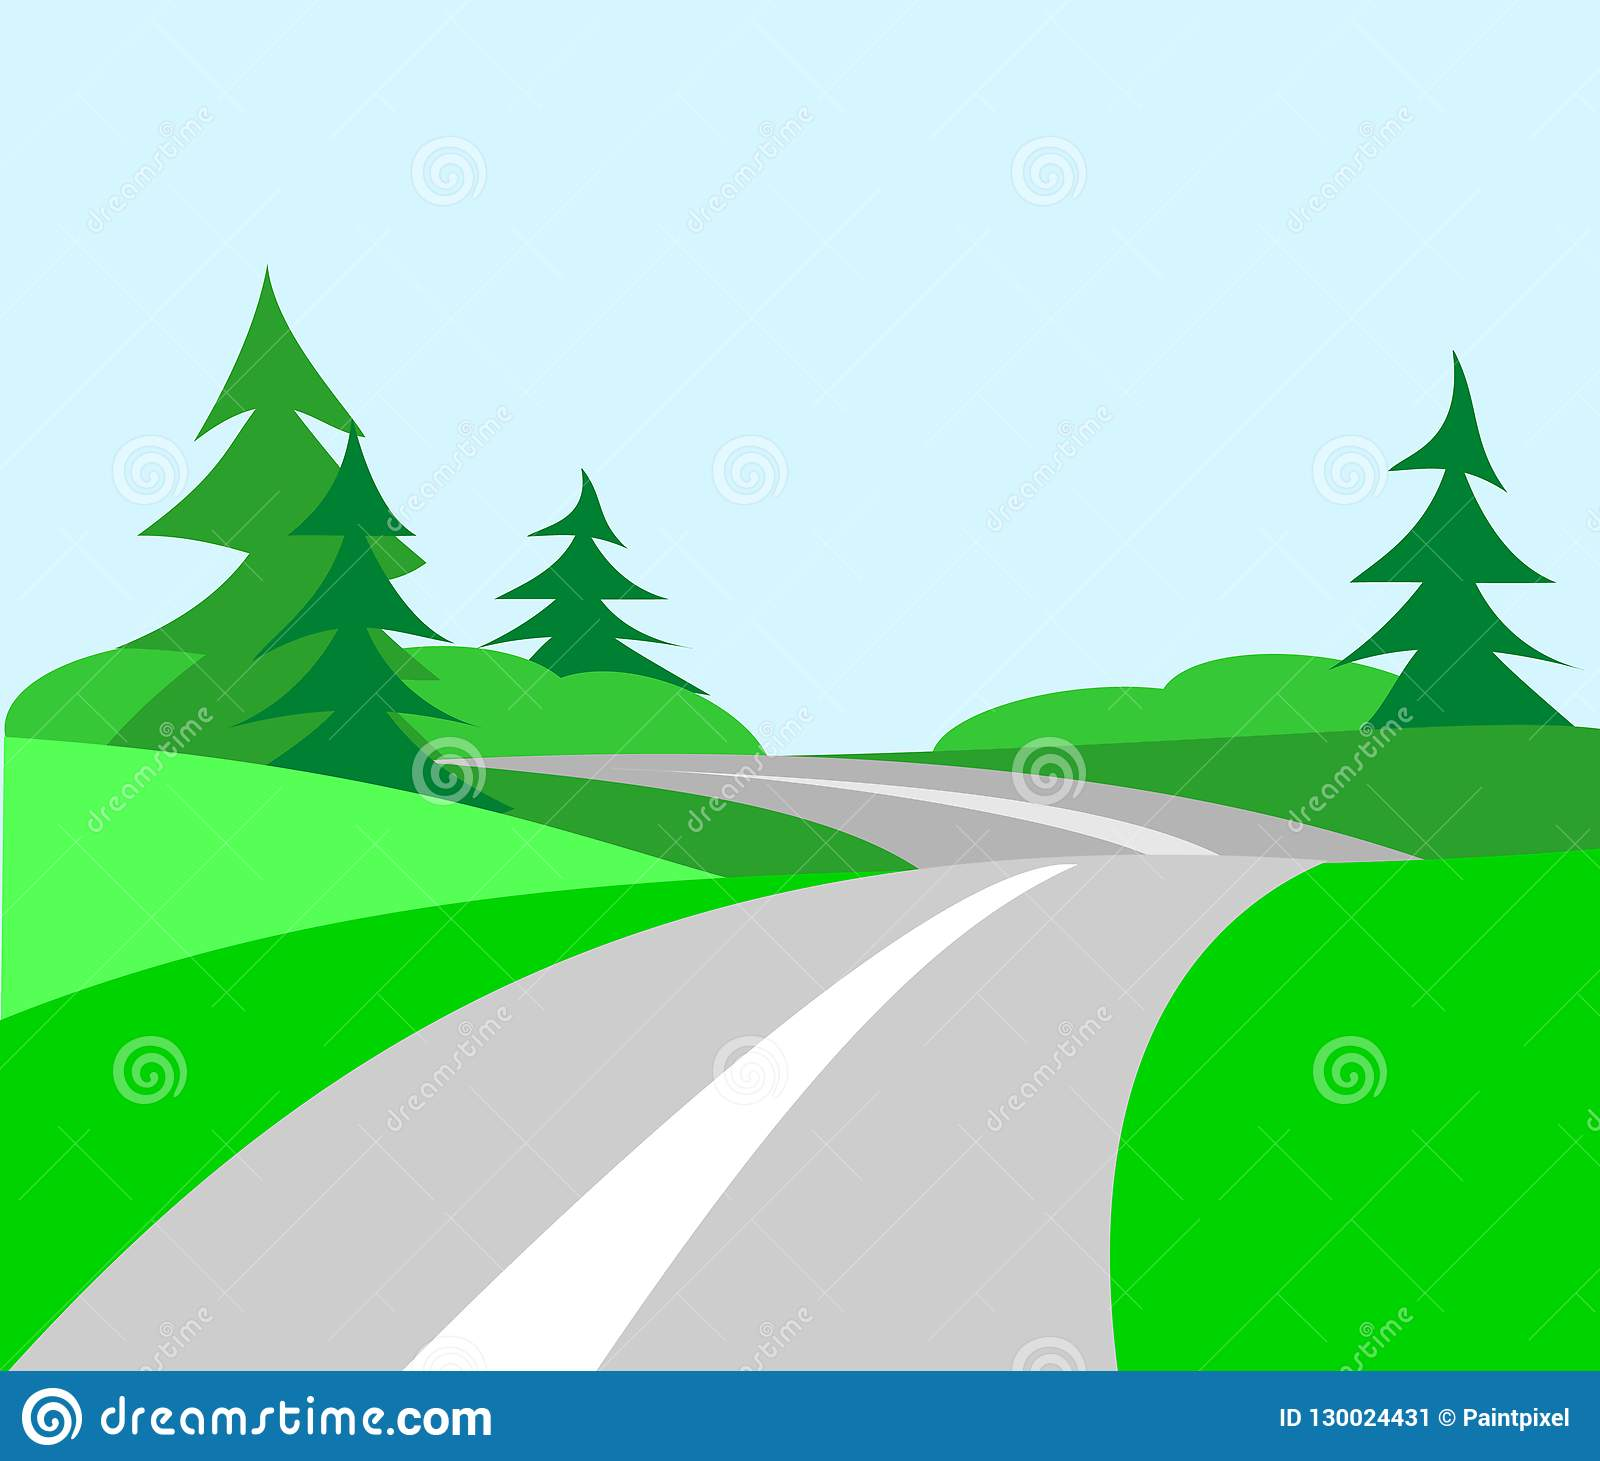 hight resolution of rolling hills landscape with evergreen trees and winding country road going off into the distance